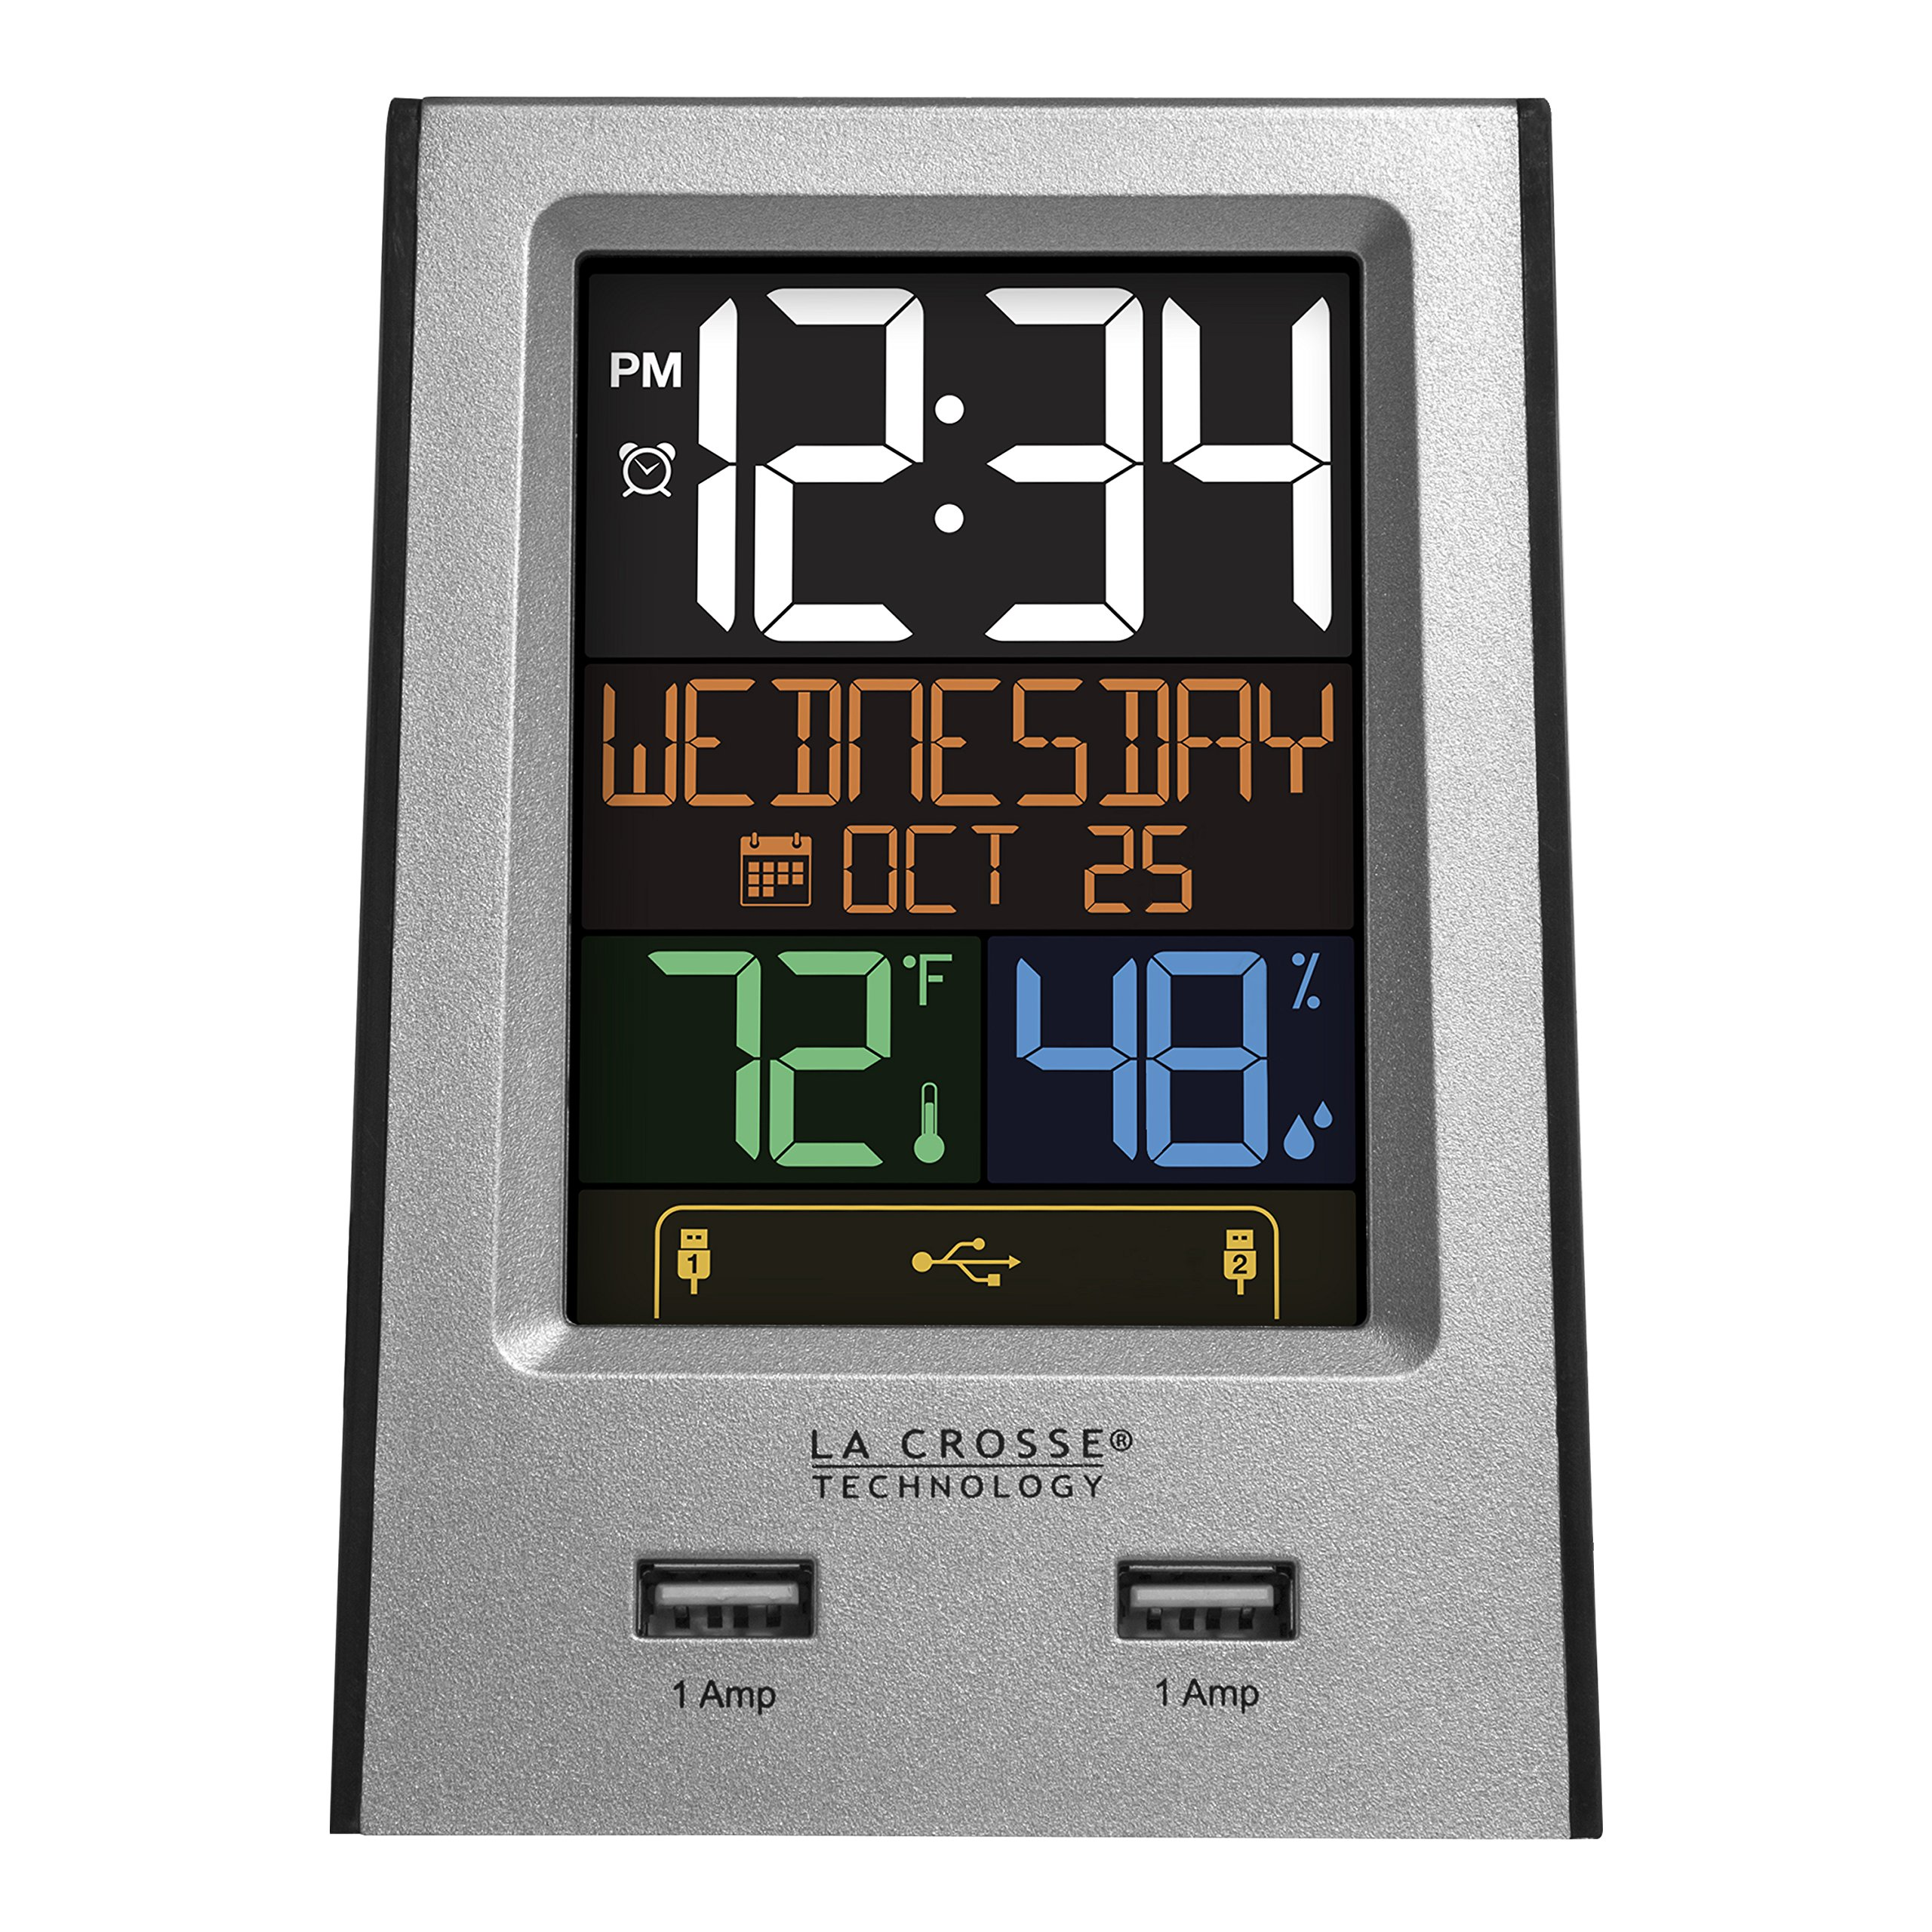 La Crosse Technology 617-1614 USB Charging Station with Alarms and Nap Timer